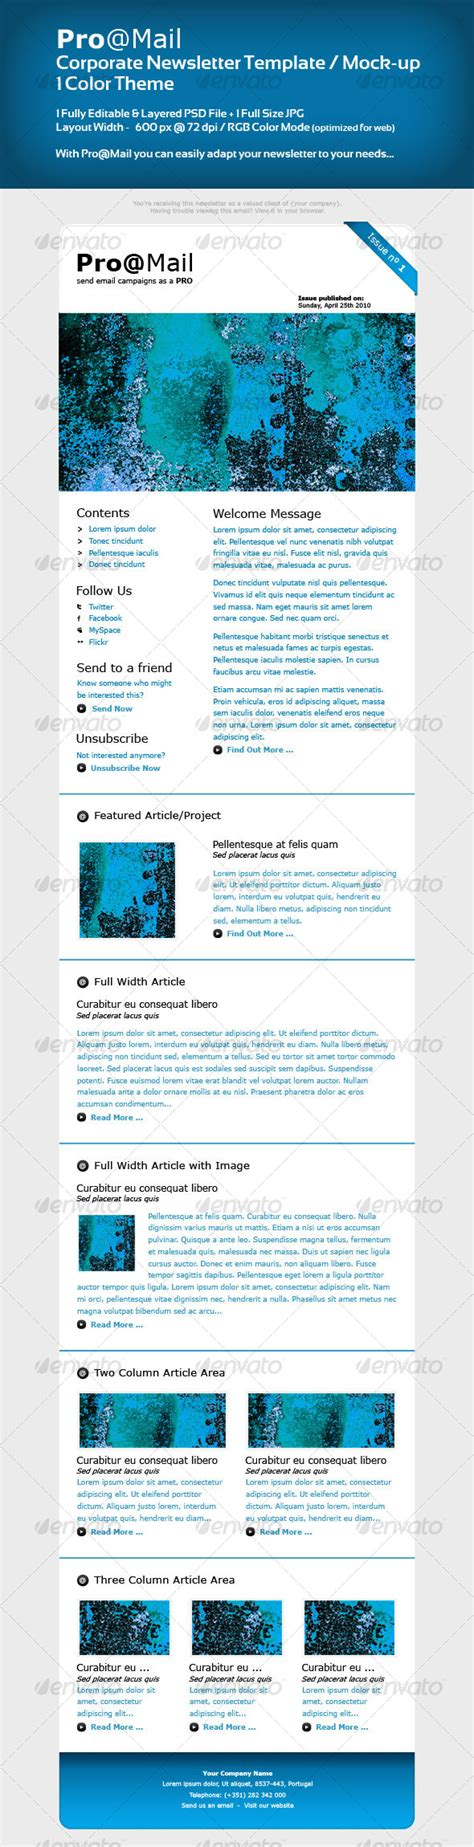 corporate newsletter template mock up graphicriver